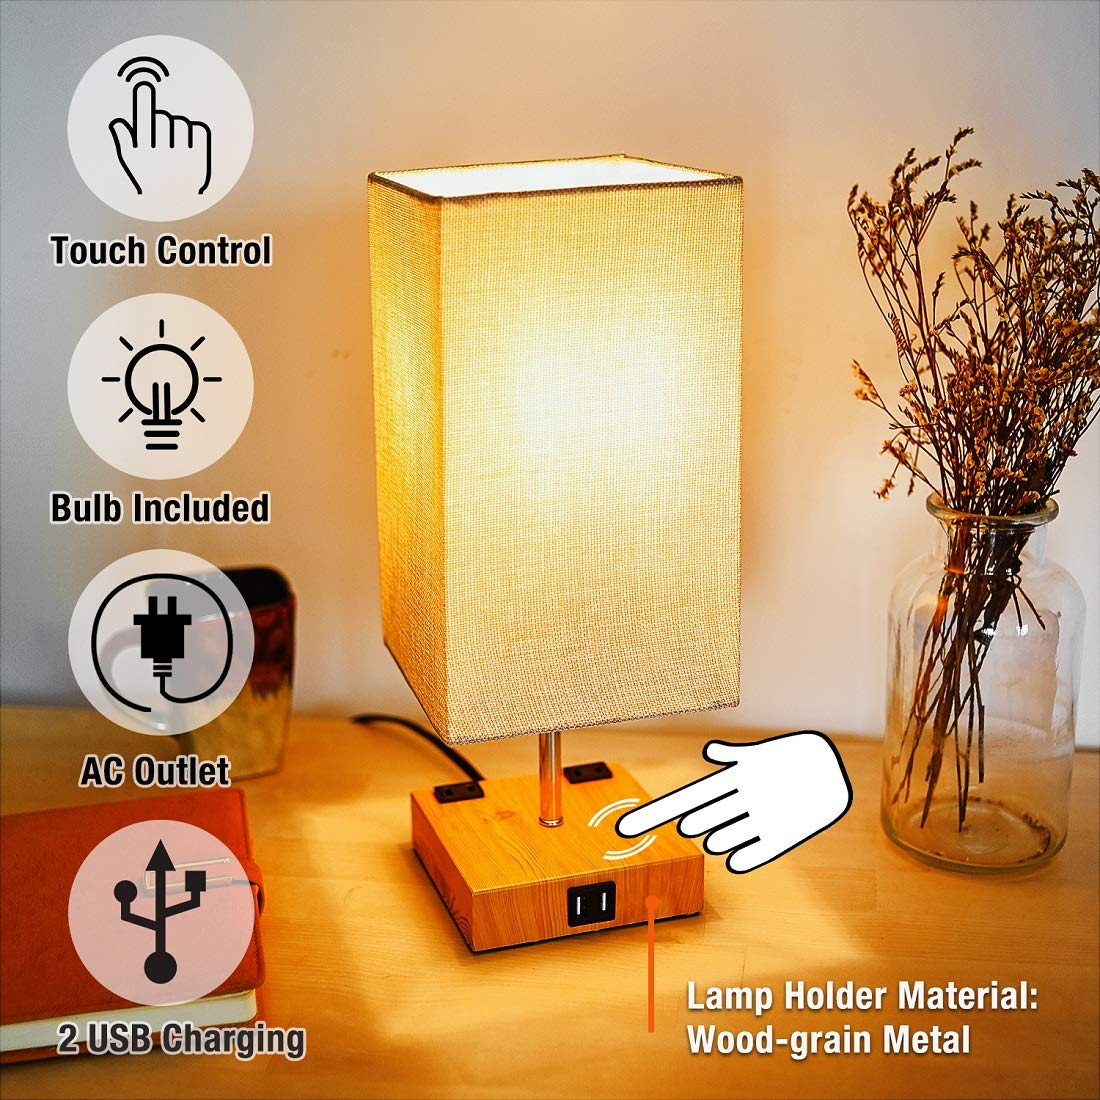 3-Way Touch Control Dimmable Table Lamp Modern Bedside Nightstand Lamps, with 2 USB Charging Ports,2 AC Outlets, Fabric Shade,60W Equivalent Vintage LED Bulb Included, for Bedroom Living Room Office